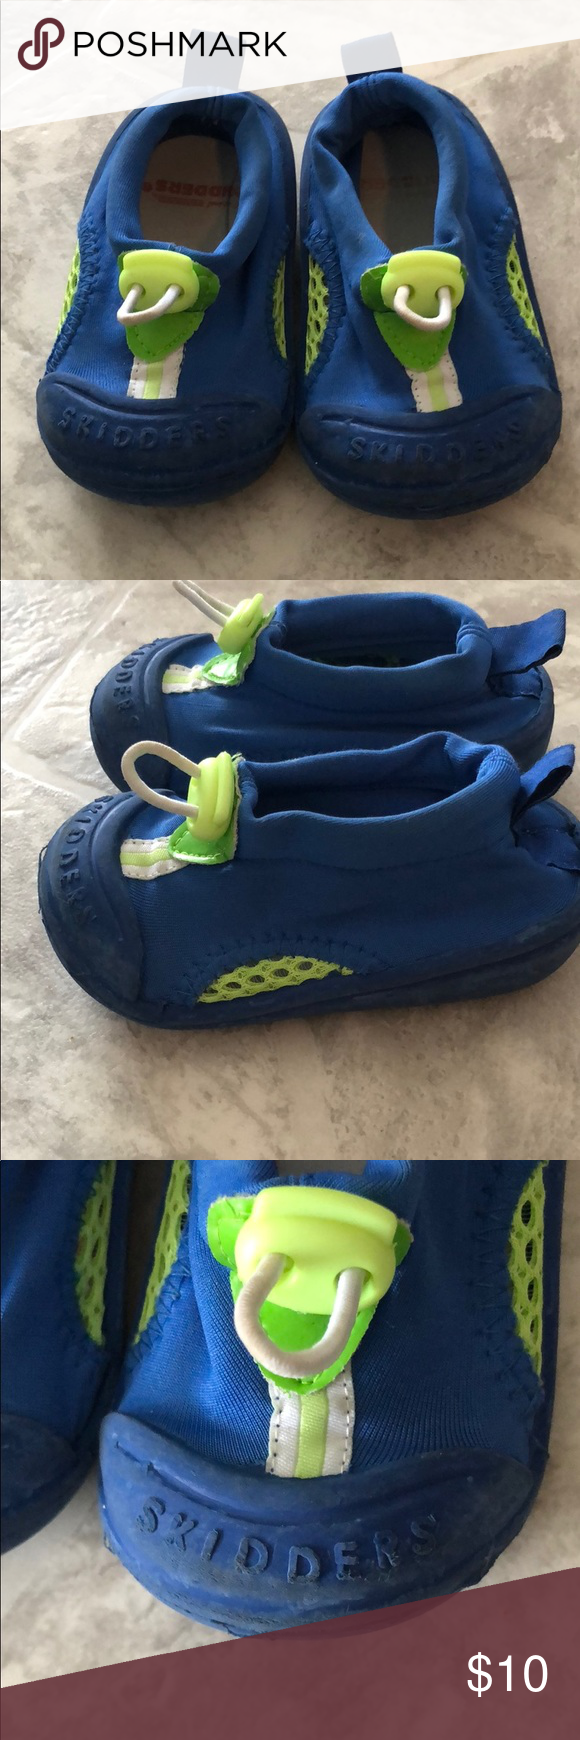 56415d9b2c4f Blue baby water shoes Blue baby water shoes Shoes Water Shoes   babywatershoes